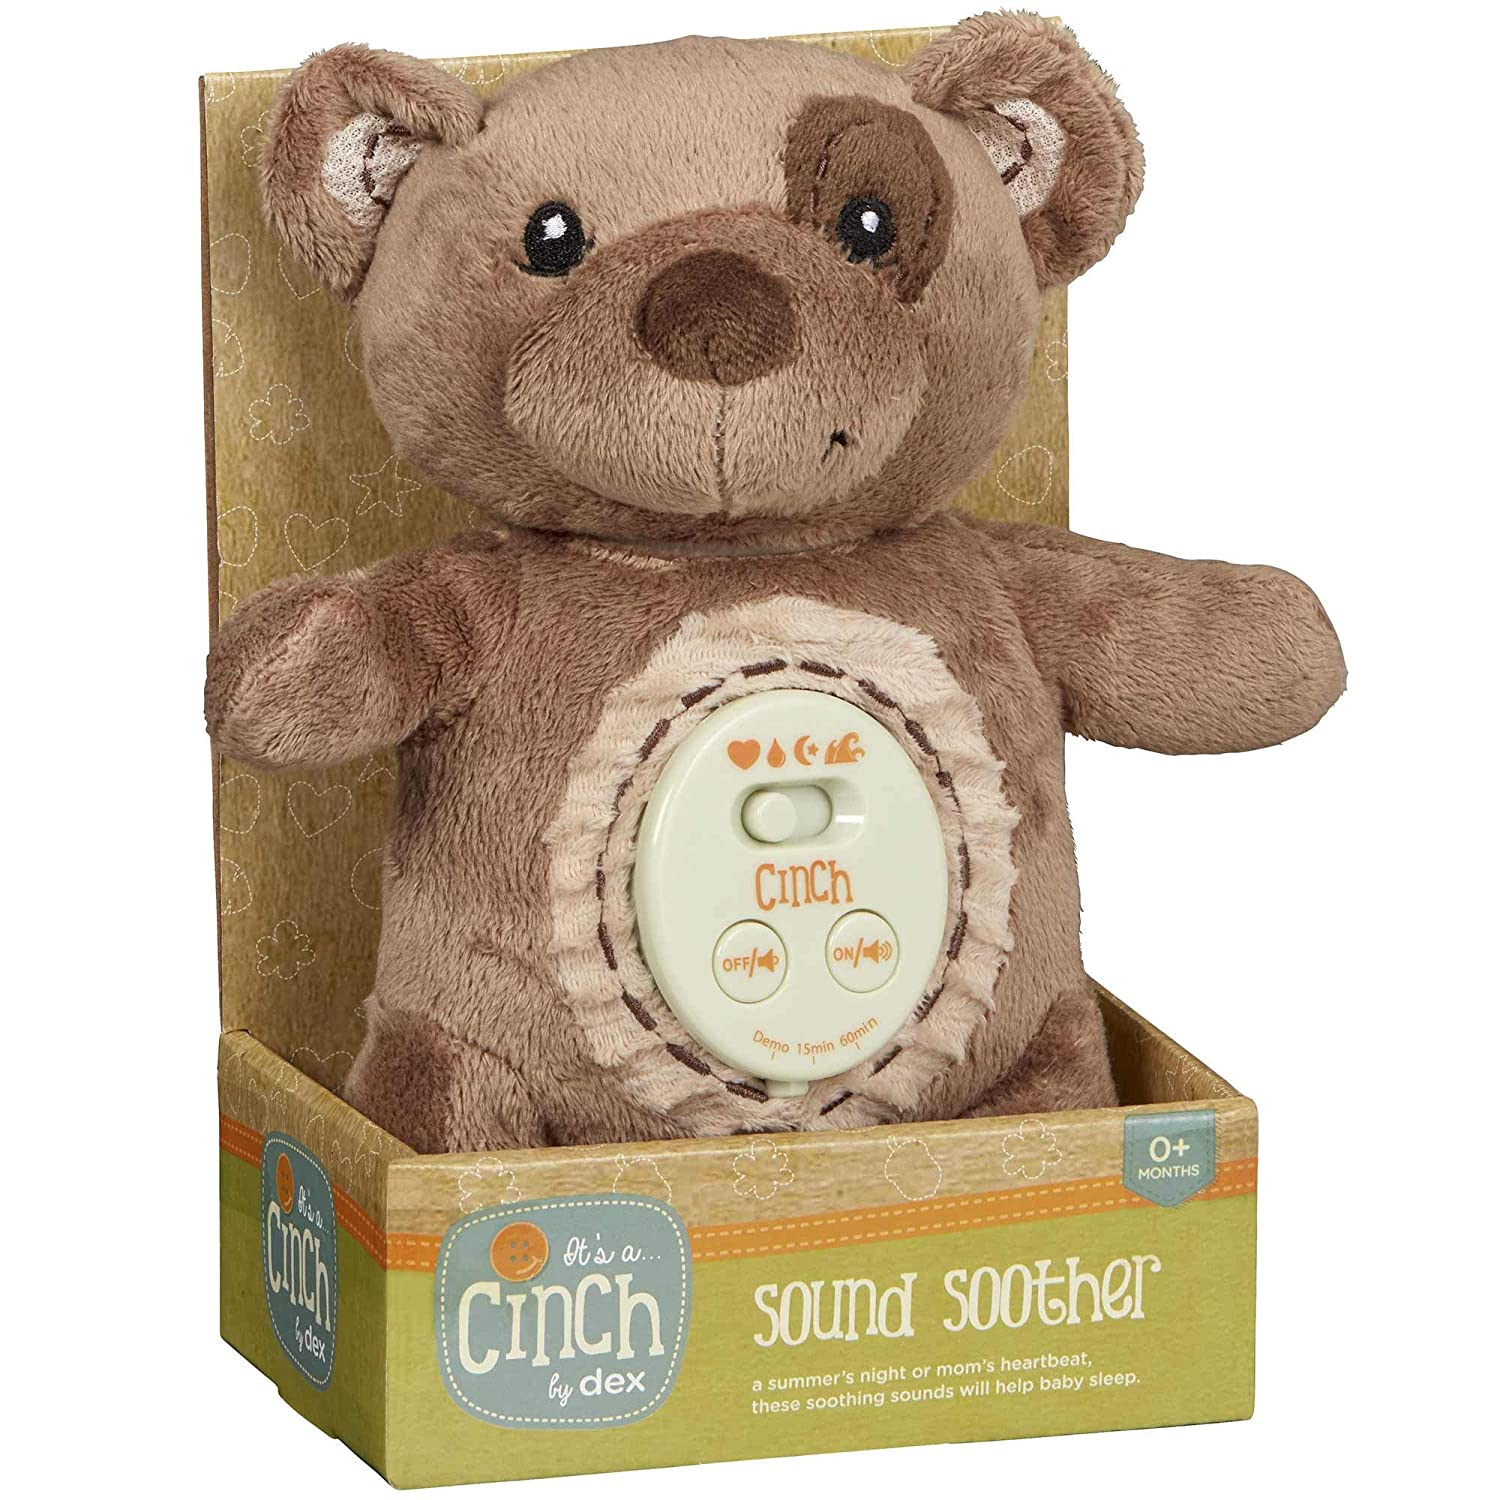 Amazon.com: Cinch by dexbaby Plush Mini - Chupete de dormir ...